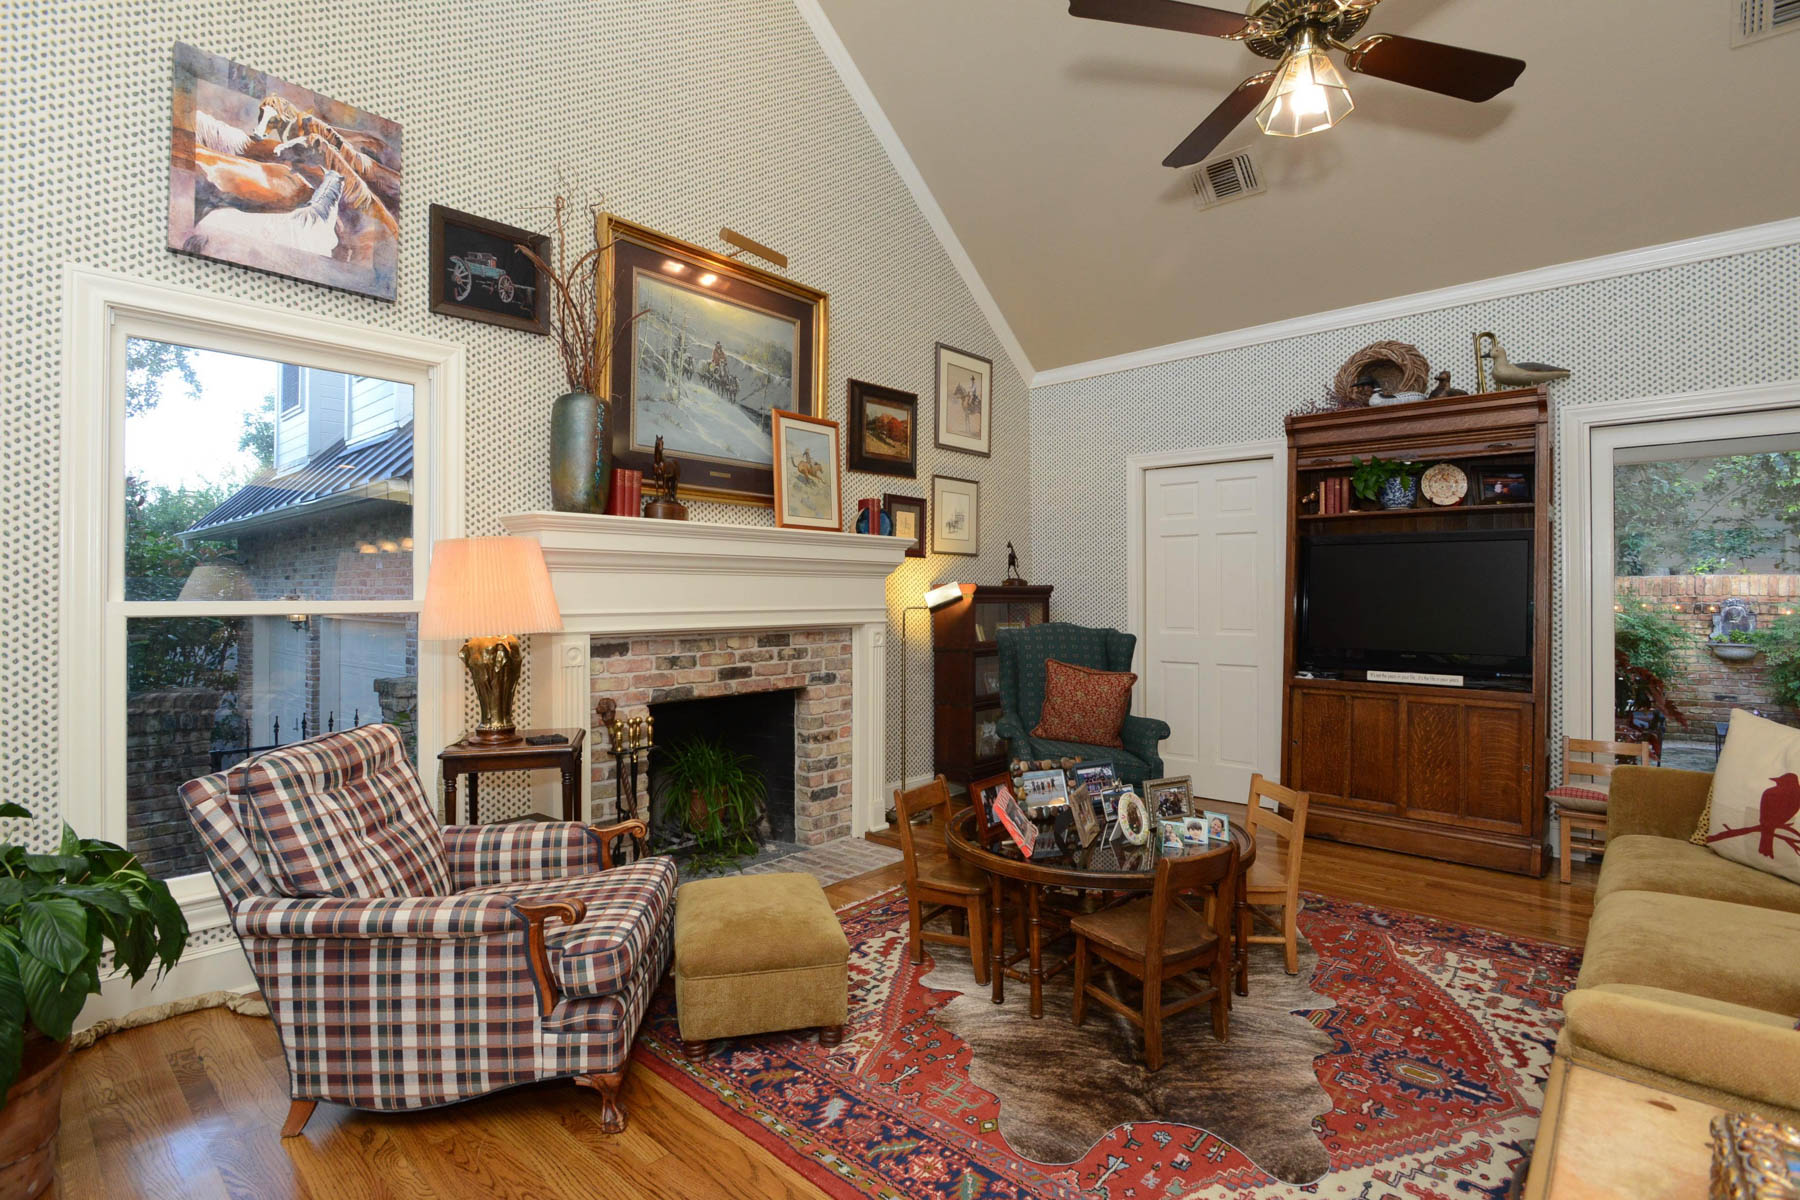 Additional photo for property listing at Elegant Living in the Midlands of Sonterra 1202 Loststone San Antonio, Texas 78258 United States